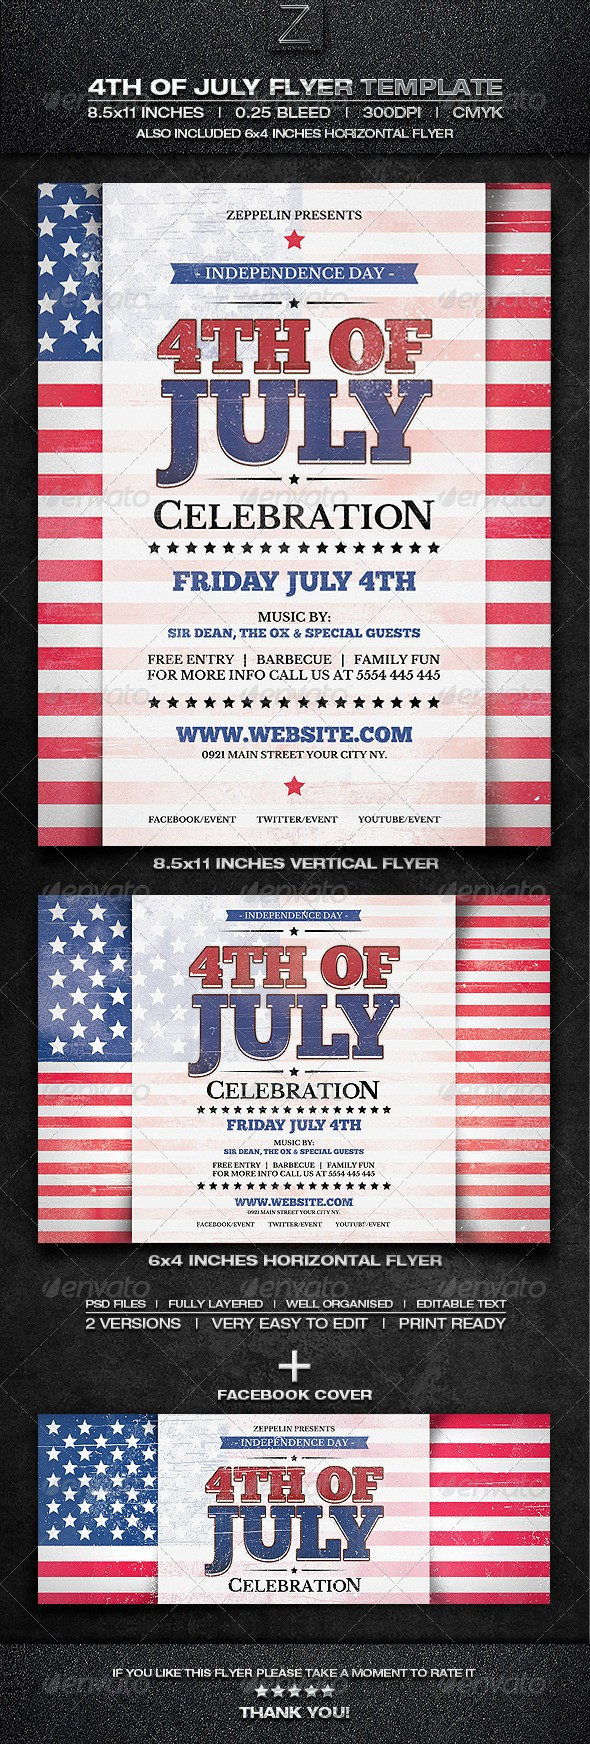 4th Of July Menu Template Luxury 4th July Flyer Template by Flyers Zeppelin